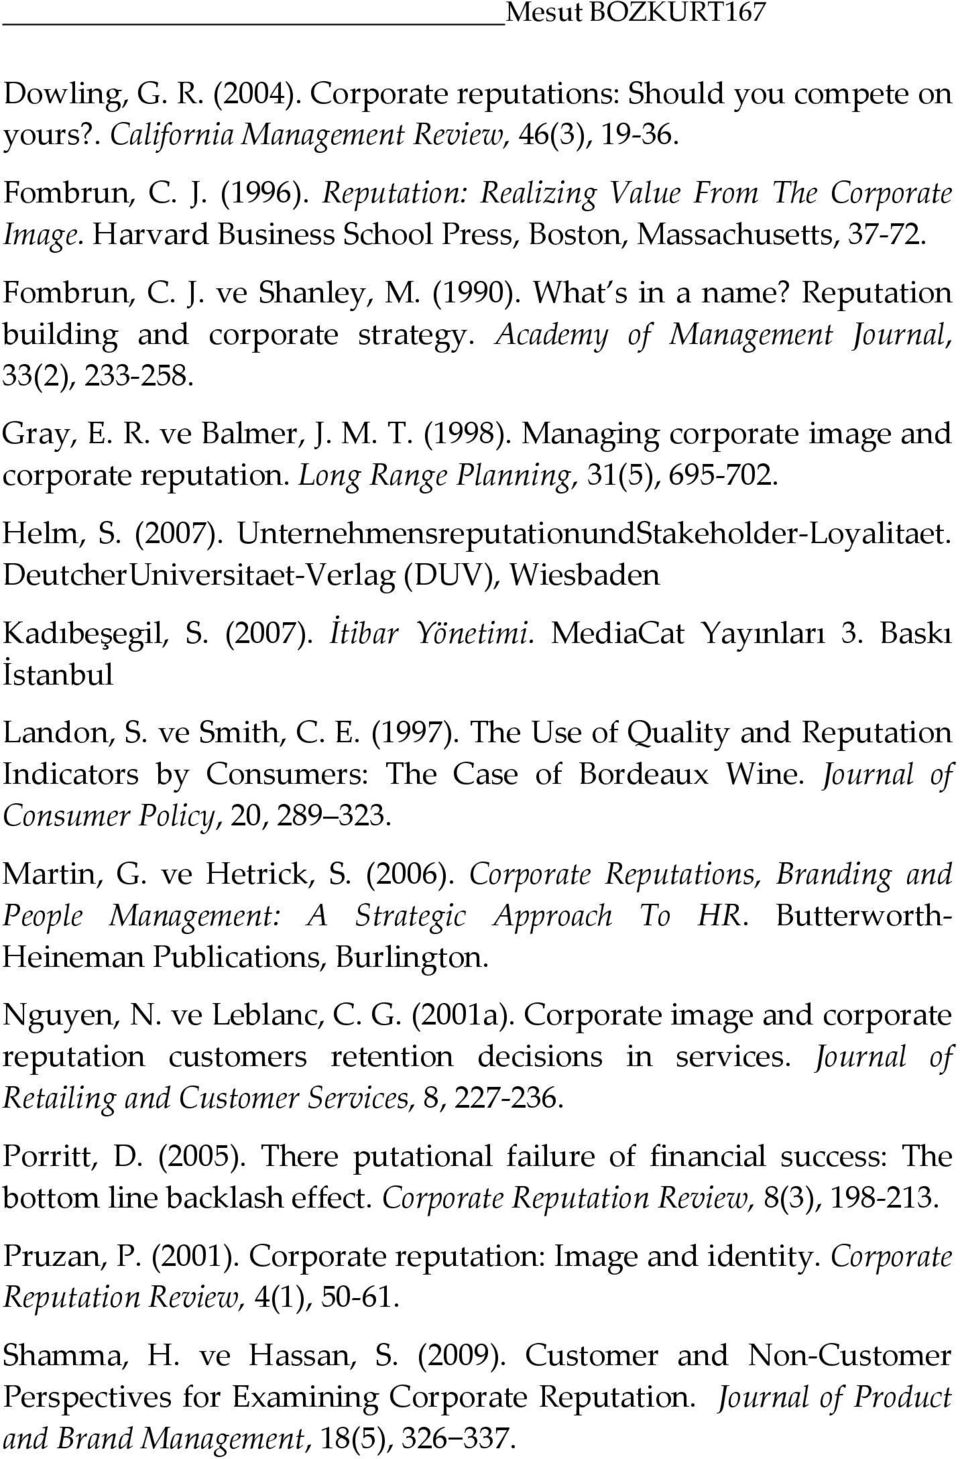 Reputation building and corporate strategy. Academy of Management Journal, 33(2), 233-258. Gray, E. R. ve Balmer, J. M. T. (1998). Managing corporate image and corporate reputation.